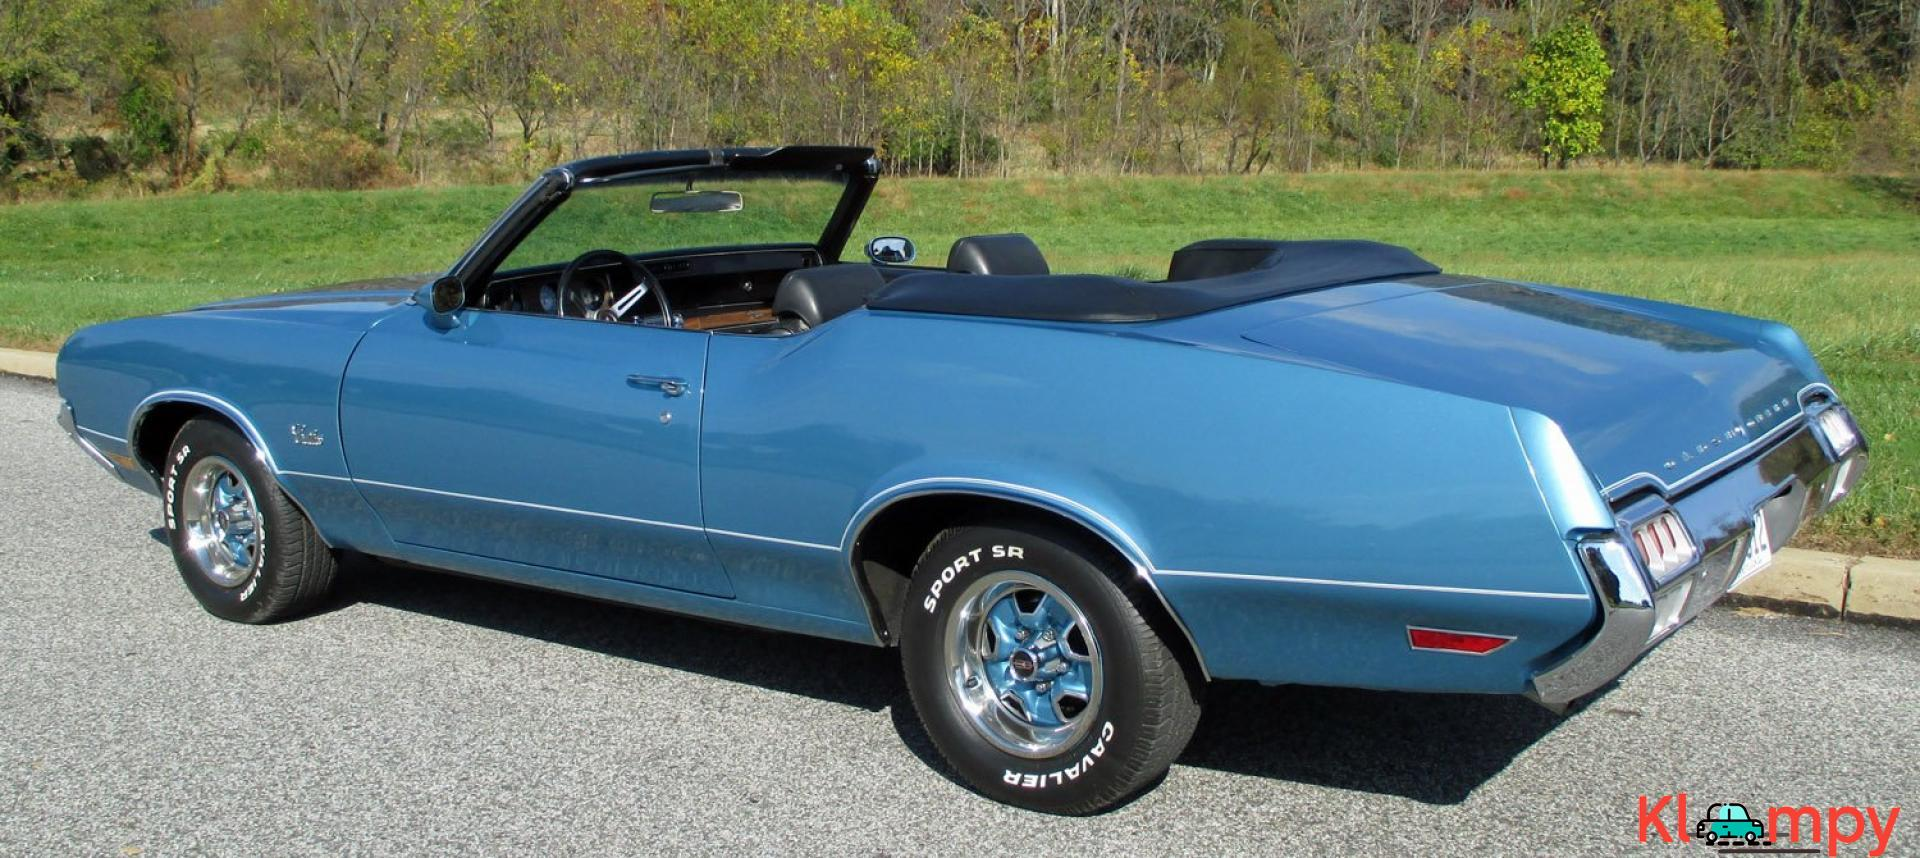 1972 Oldsmobile Cutlass Supreme 350 Convertible V8 - 6/19